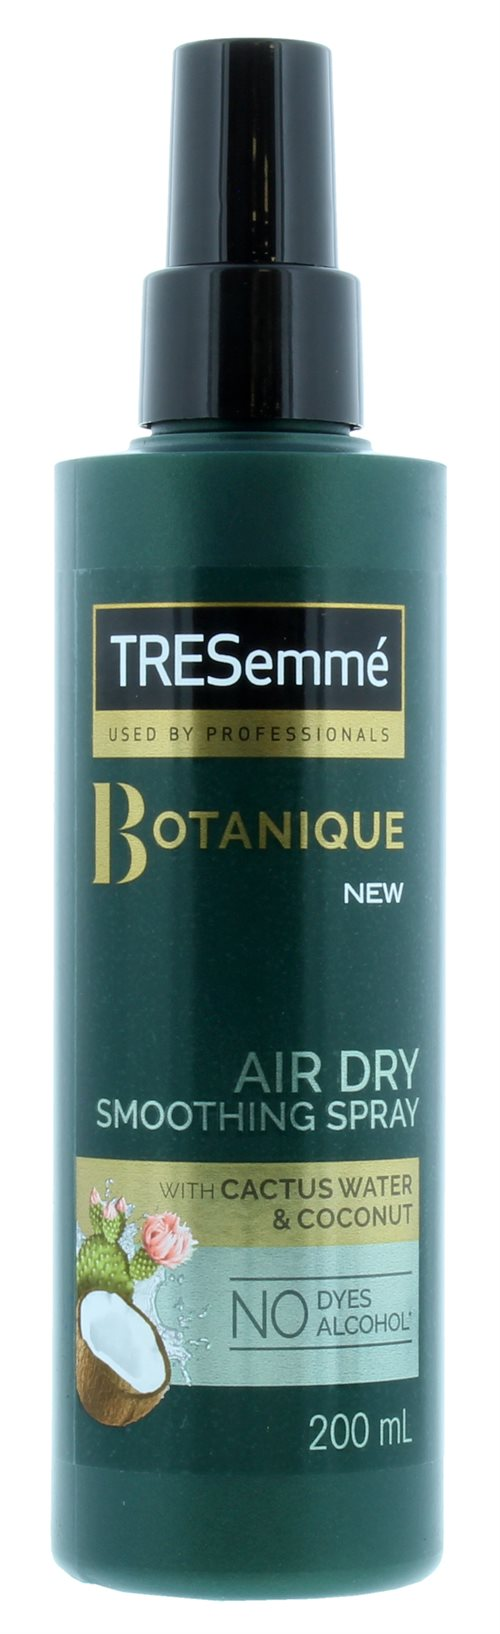 Tresemme 200ml Dry Smoothing Aqua Spray